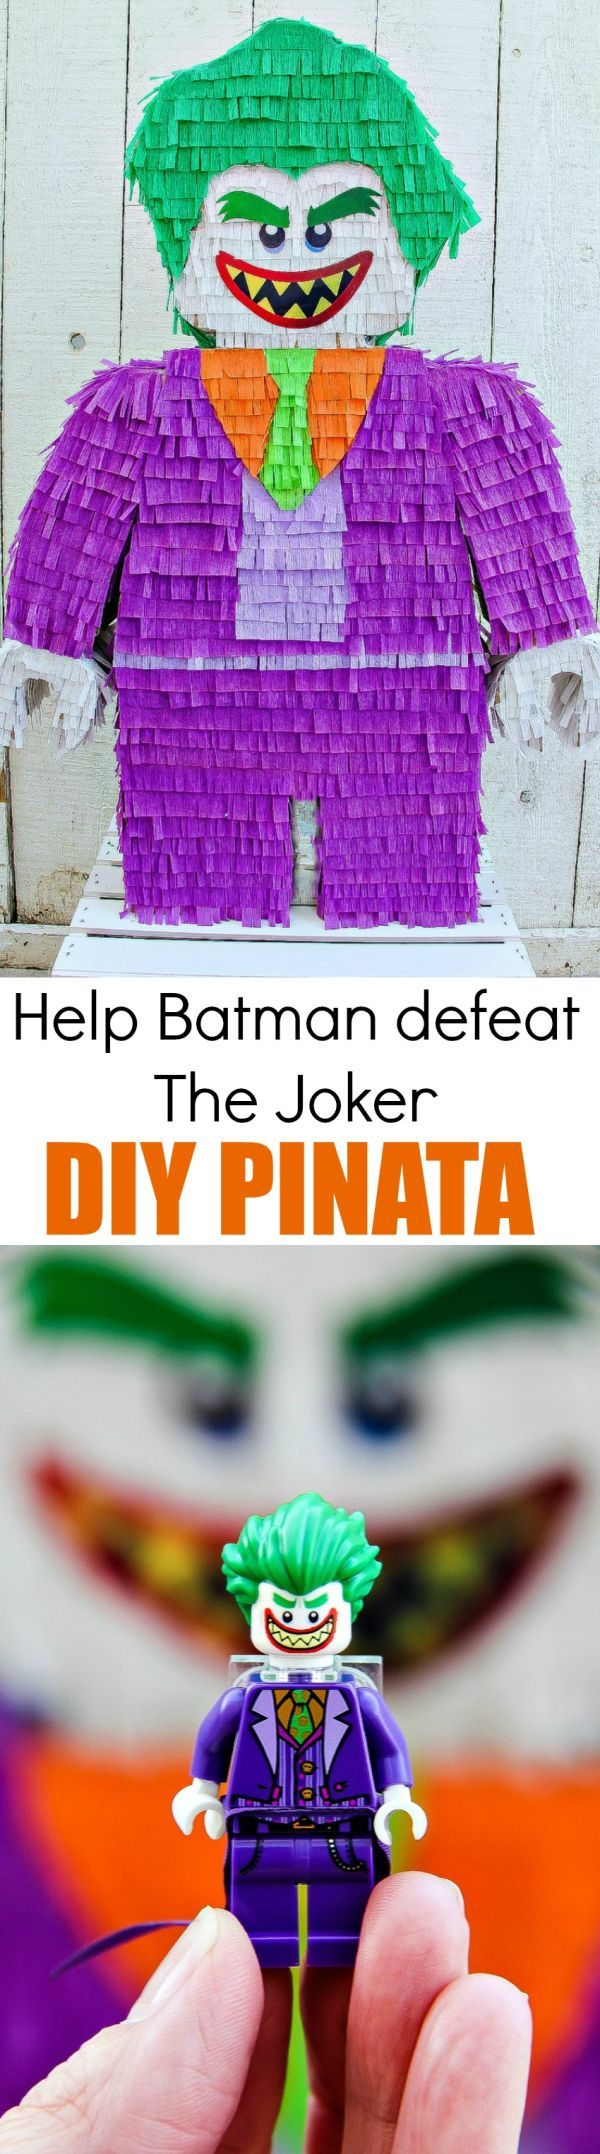 Help LEGO Batman defeat The Joker with this DIY Pinata inspired by The LEGO Batman Movie In theaters 2/10 #LEGOBatmanMovie AD